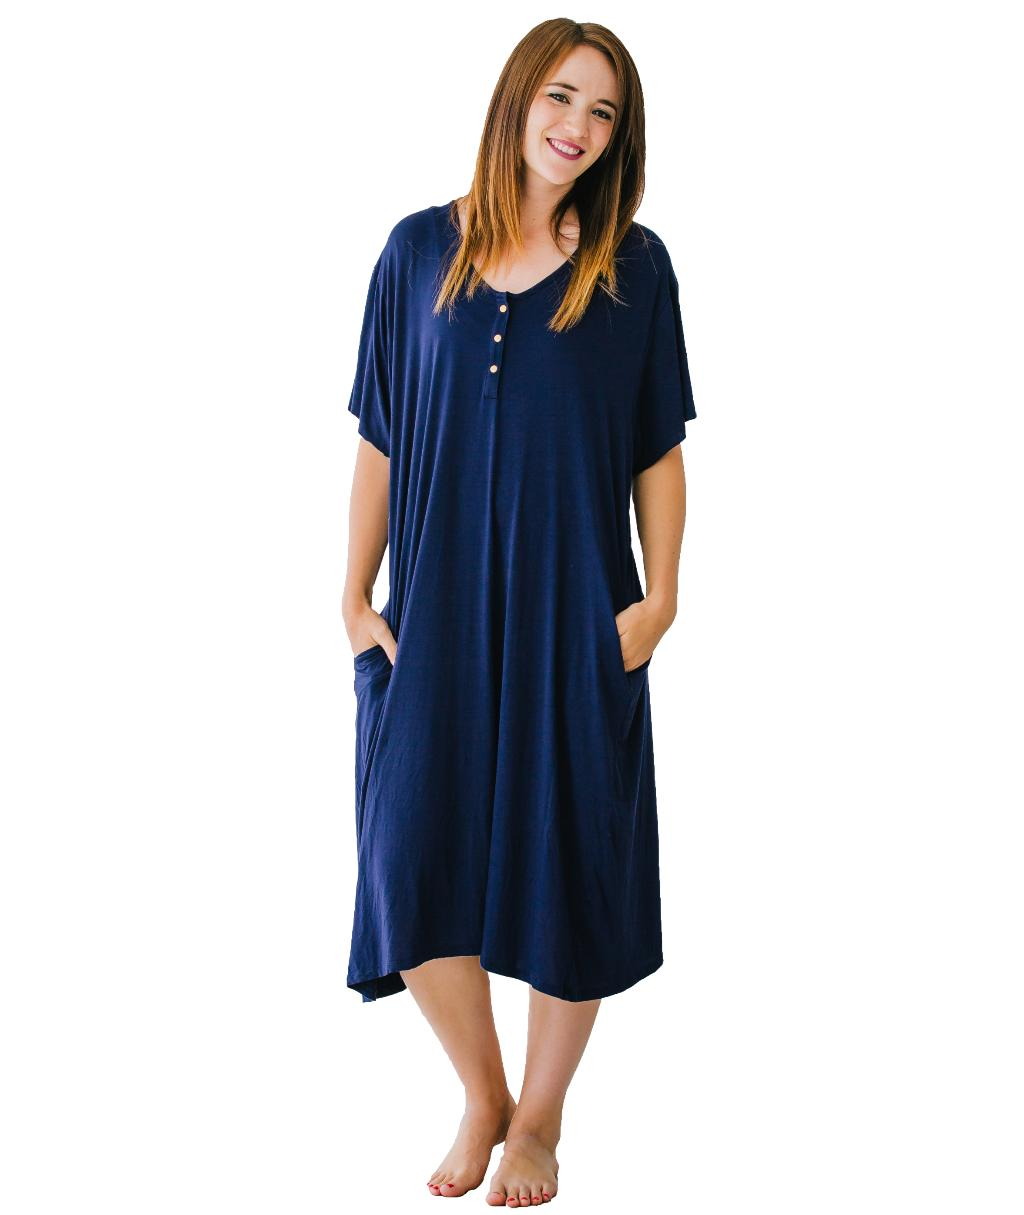 Undercover Mama Dress 24-7 Nightgown